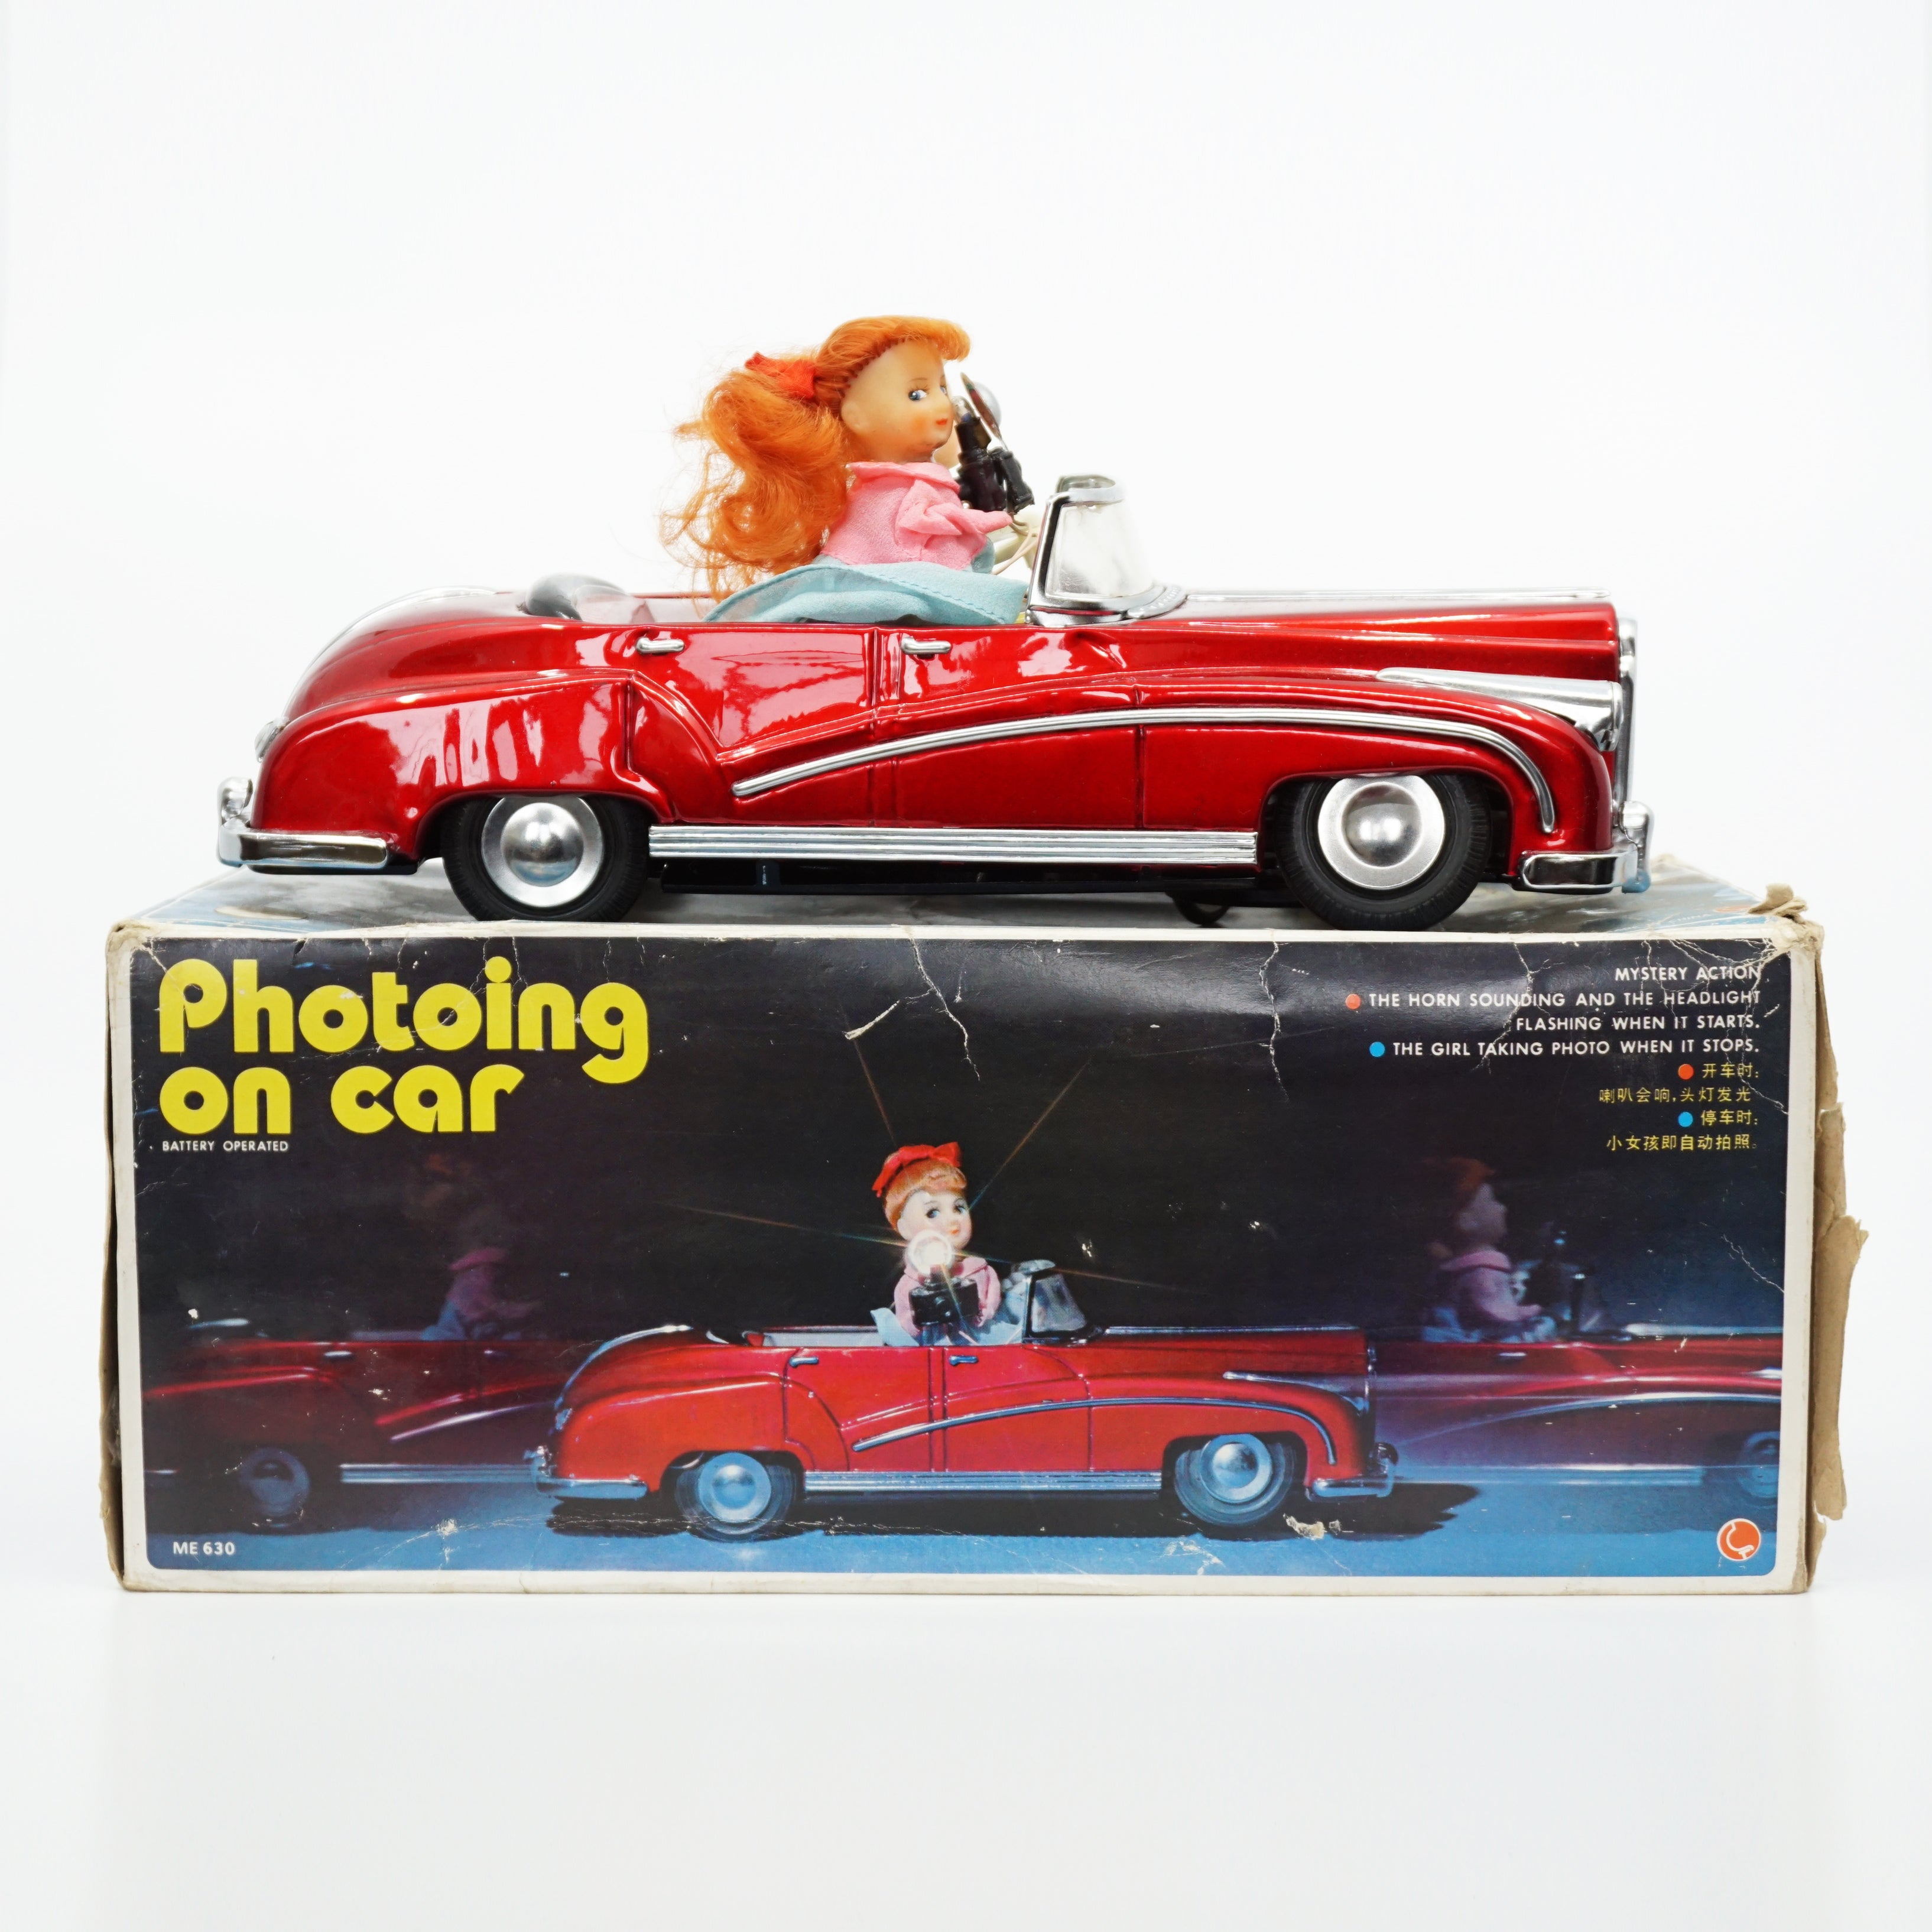 1960 Photoing On Car Tin Rolls Royce Car Model Me630 Vintage Toy Sustainable Deco